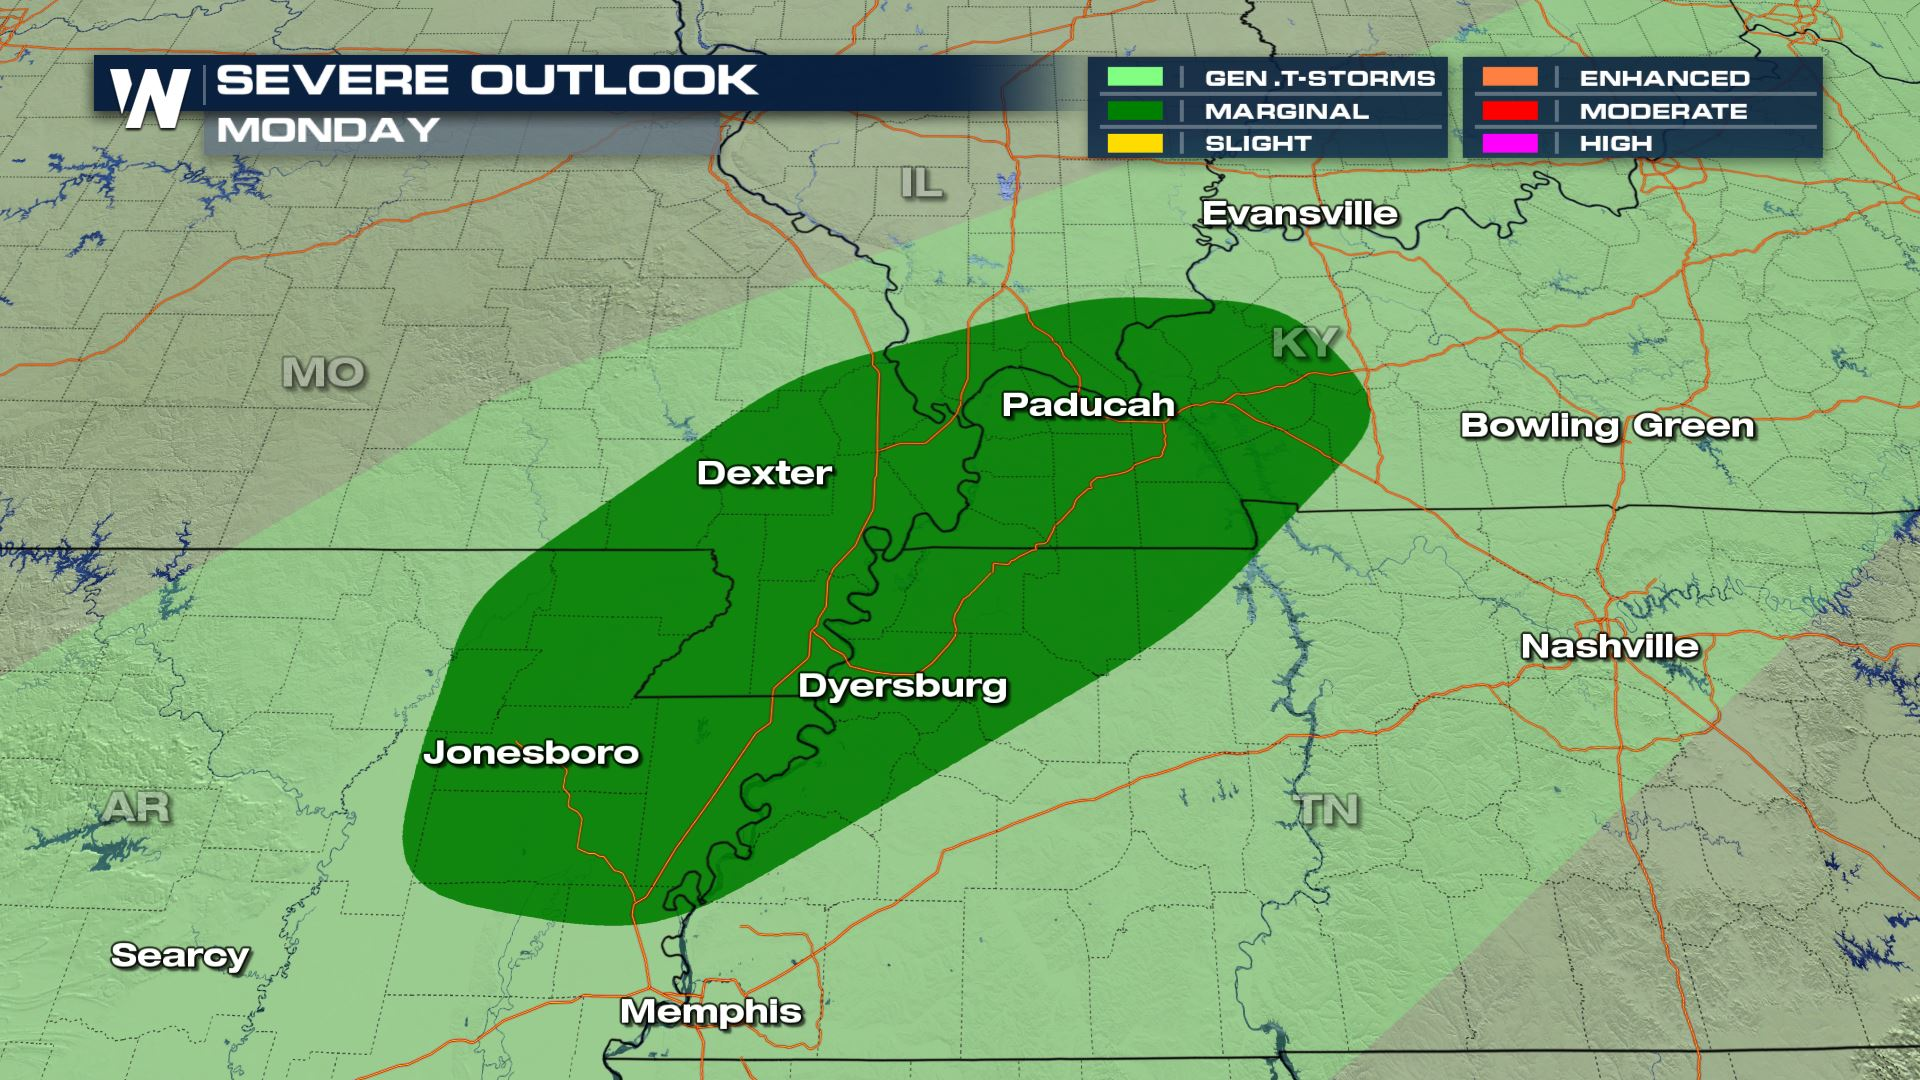 Isolated Severe Storms for the Lower Mississippi Valley On Monday